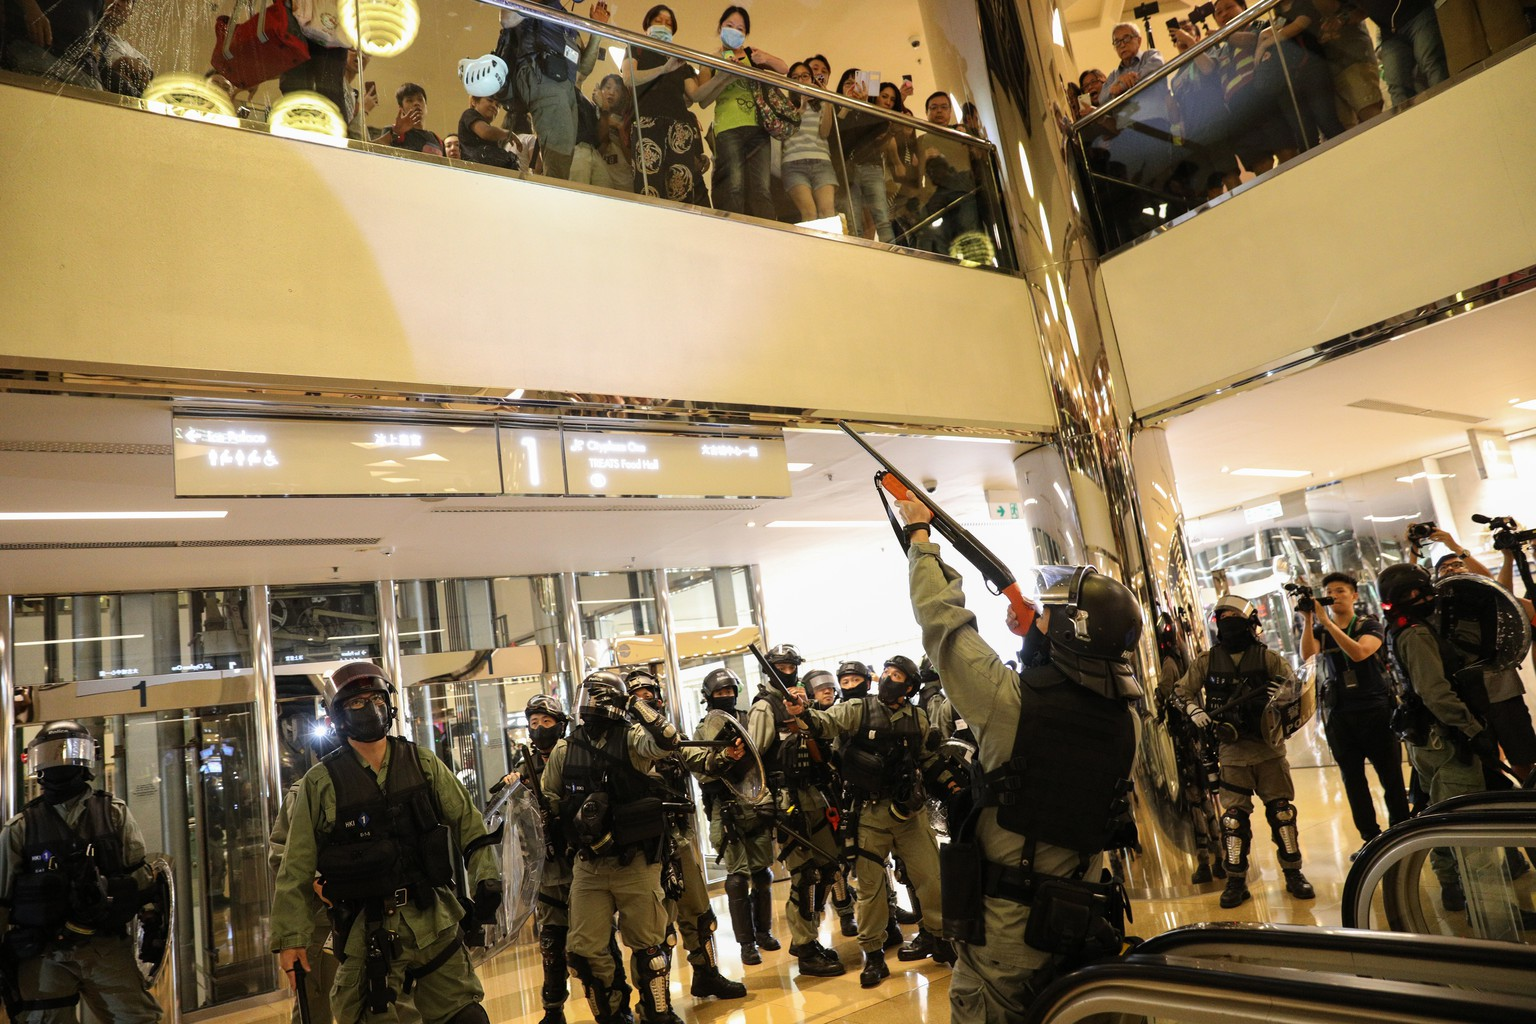 epa07969316 Riot police arrive to a shopping mall to disperse protesters during a rally against police brutality in Hong Kong, China, 03 November 2019. Hong Kong has entered a 22nd week of ongoing mass protests, originally triggered by a now withdrawn extradition bill to mainland China that have turned into a wider pro-democracy movement.  EPA/JEROME FAVRE